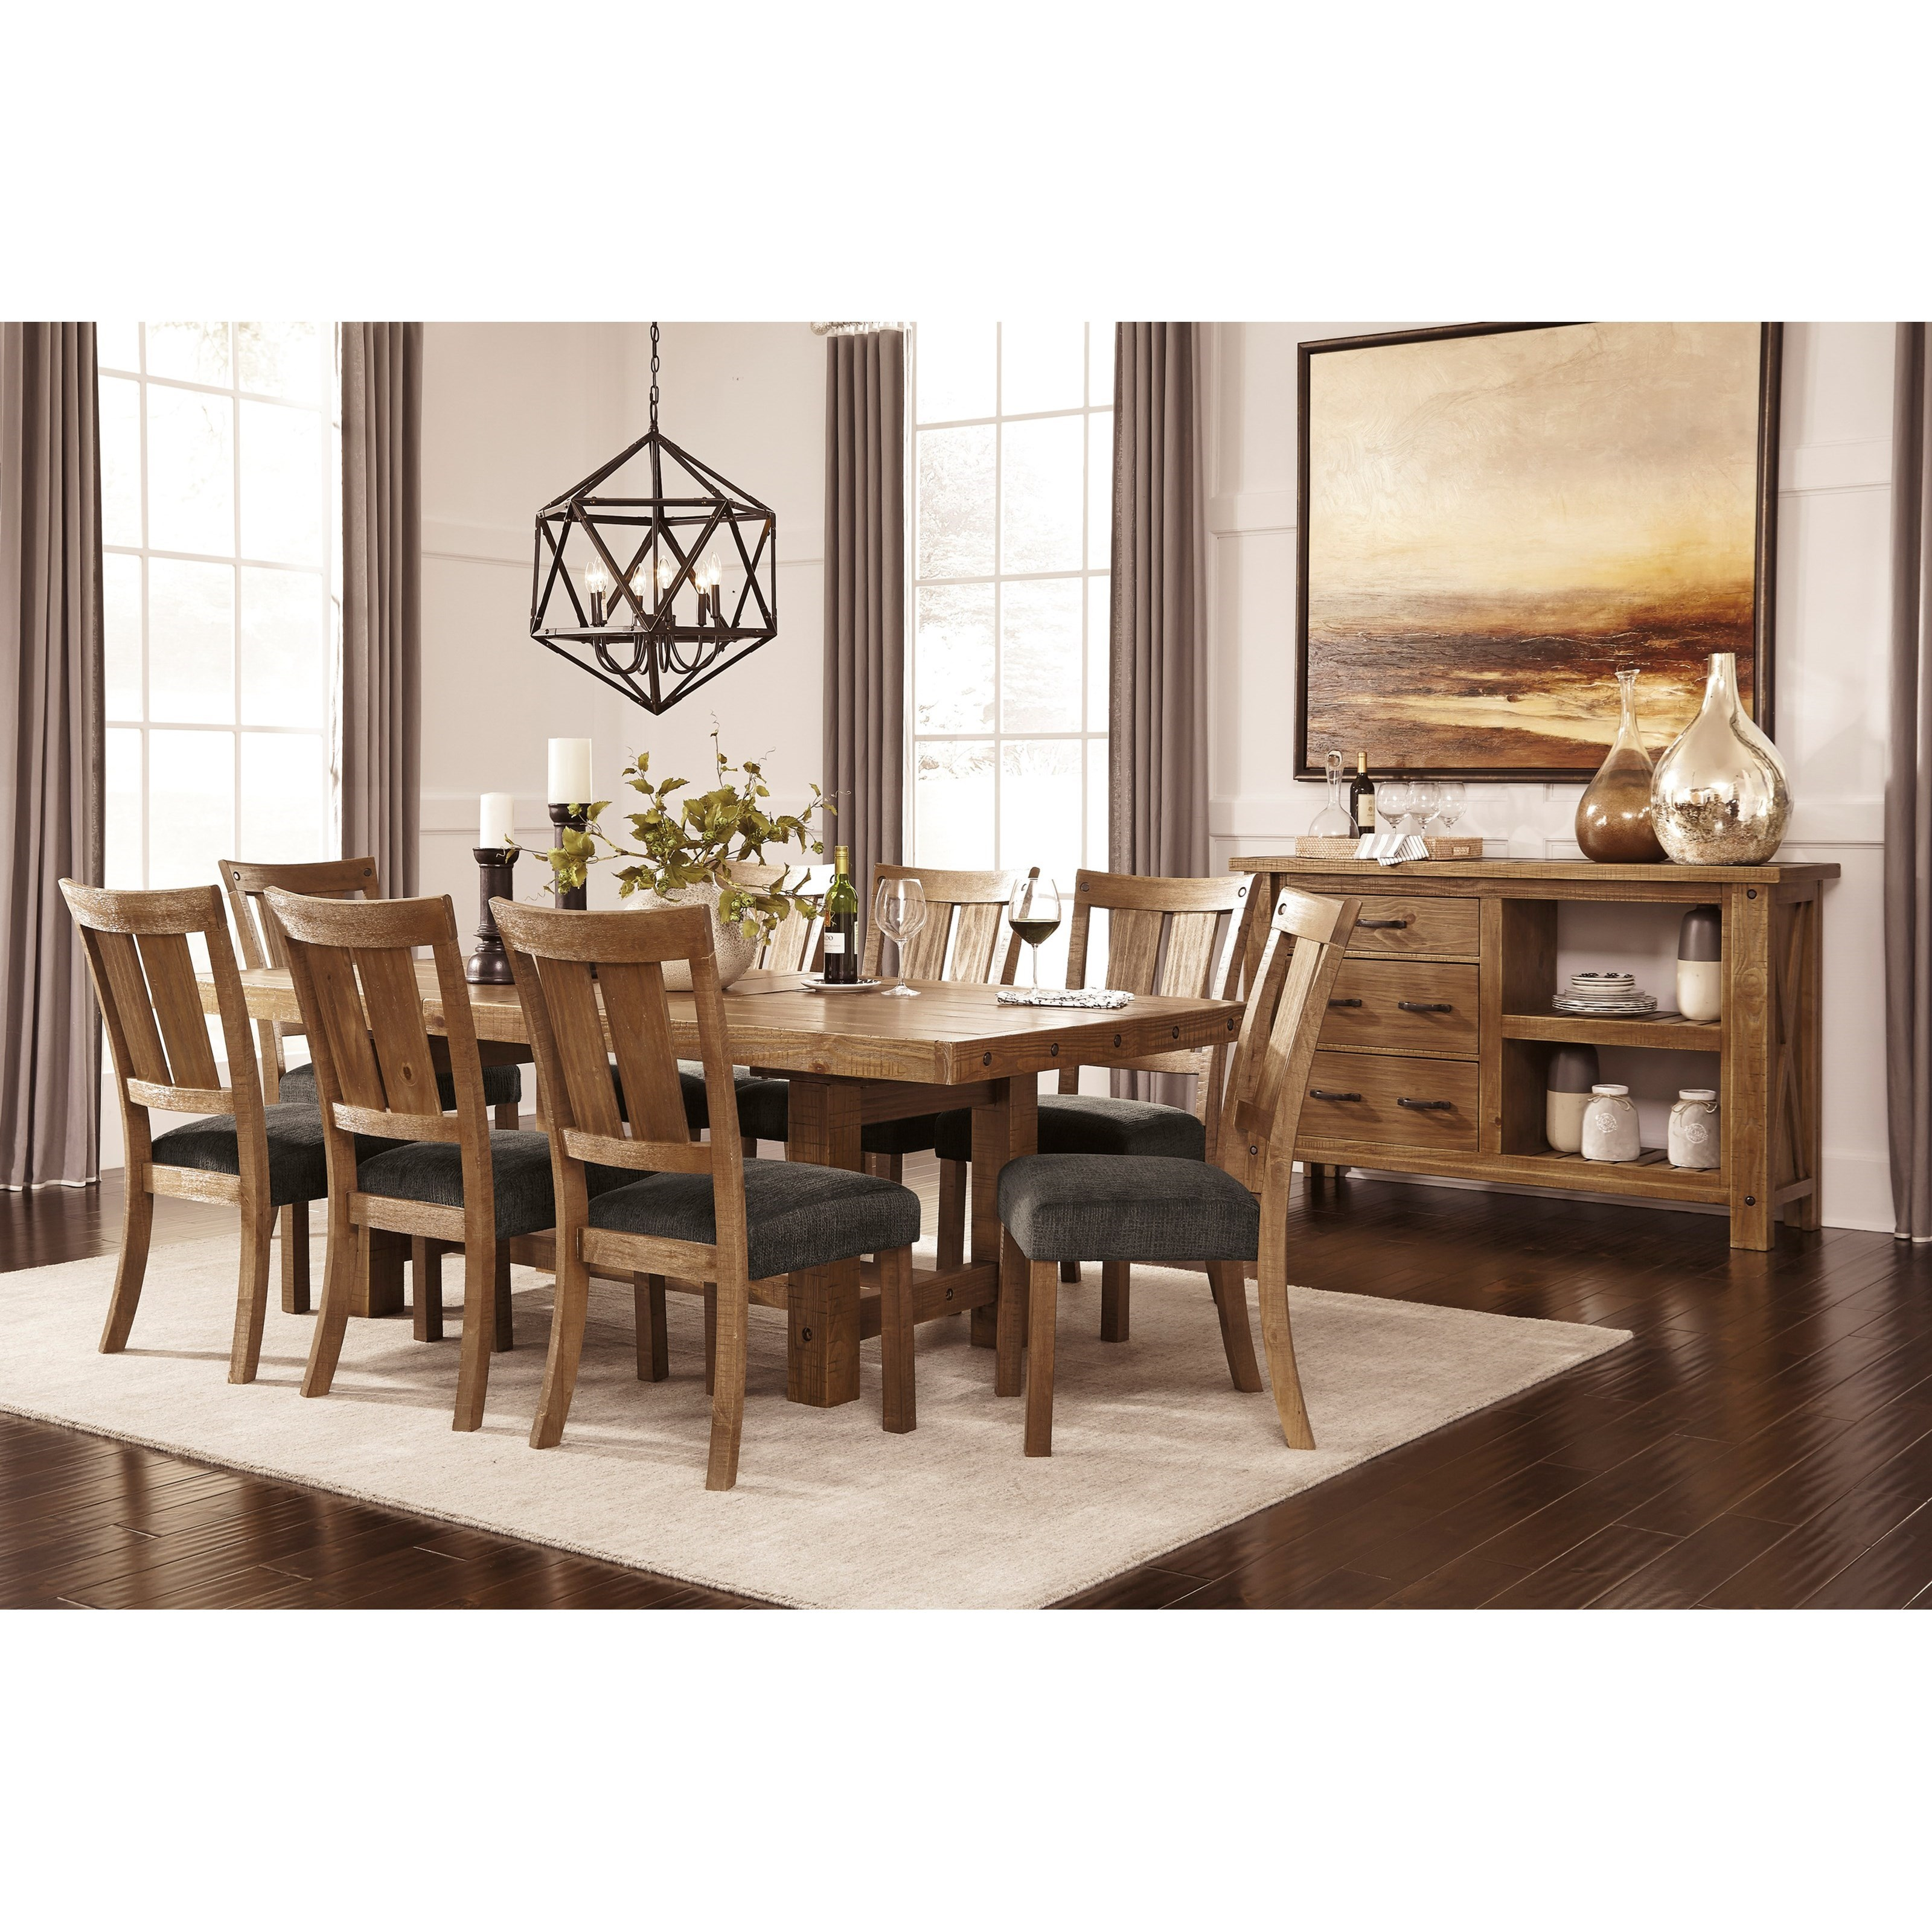 Signature Design by Ashley Tamilo Formal Dining Room Group - Item Number: D714 Dining Room Group 1